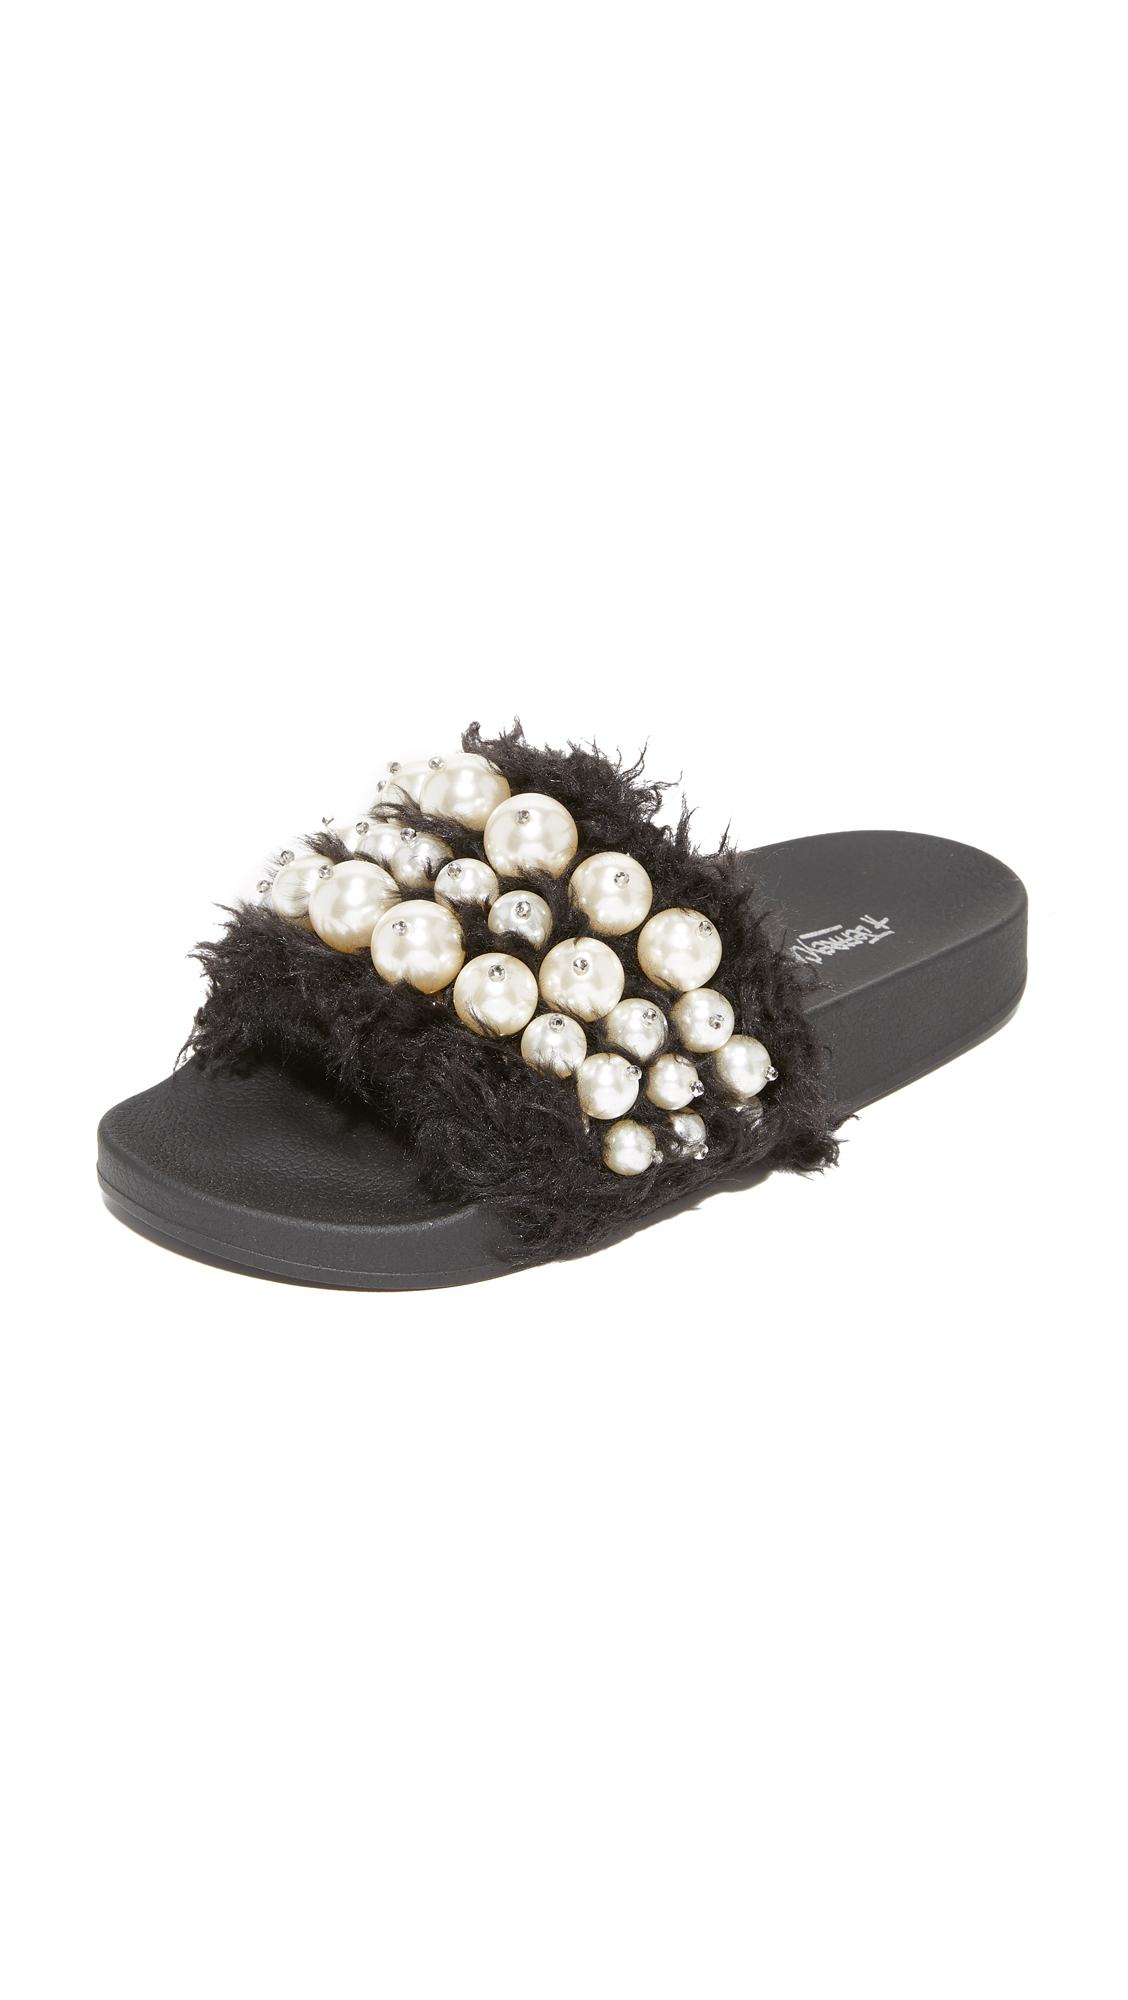 Jeffrey Campbell Pearl Sandals - Black